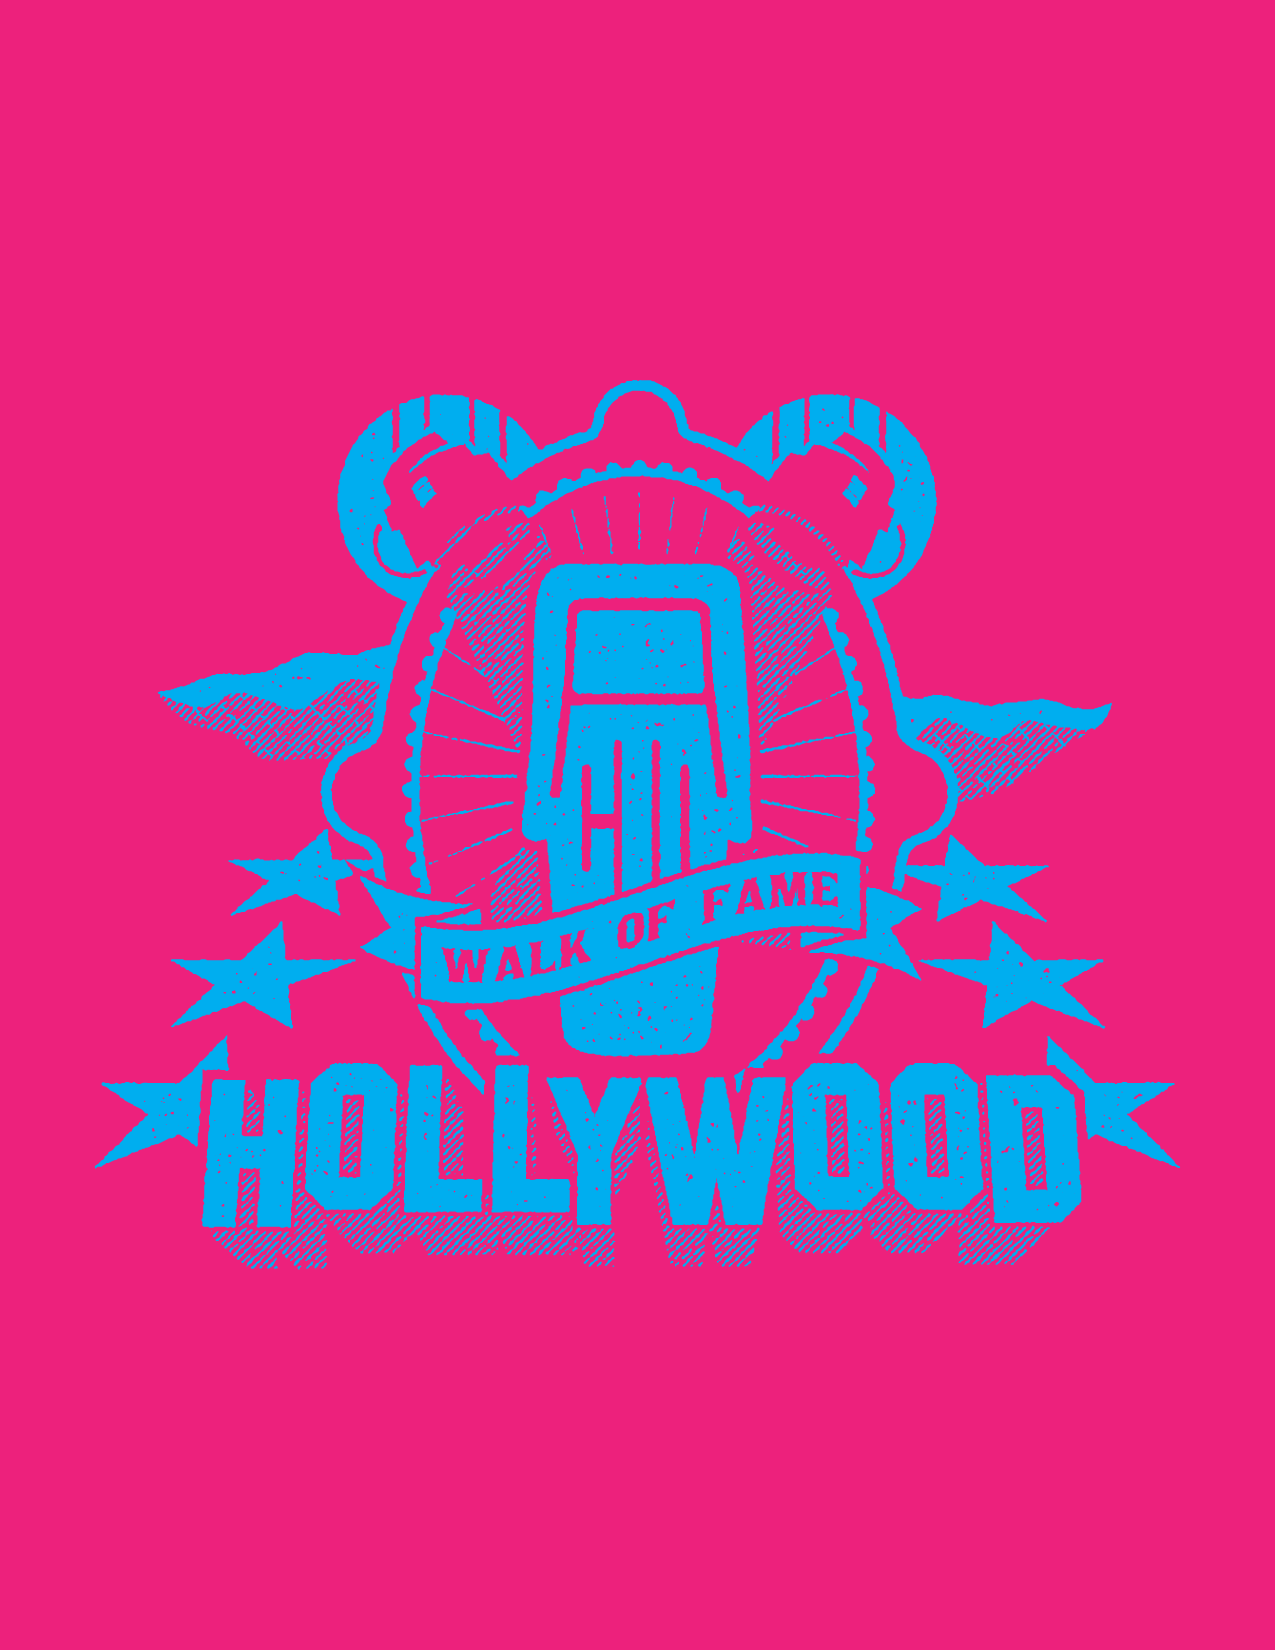 MM_Hollywood_Graphics_7.png